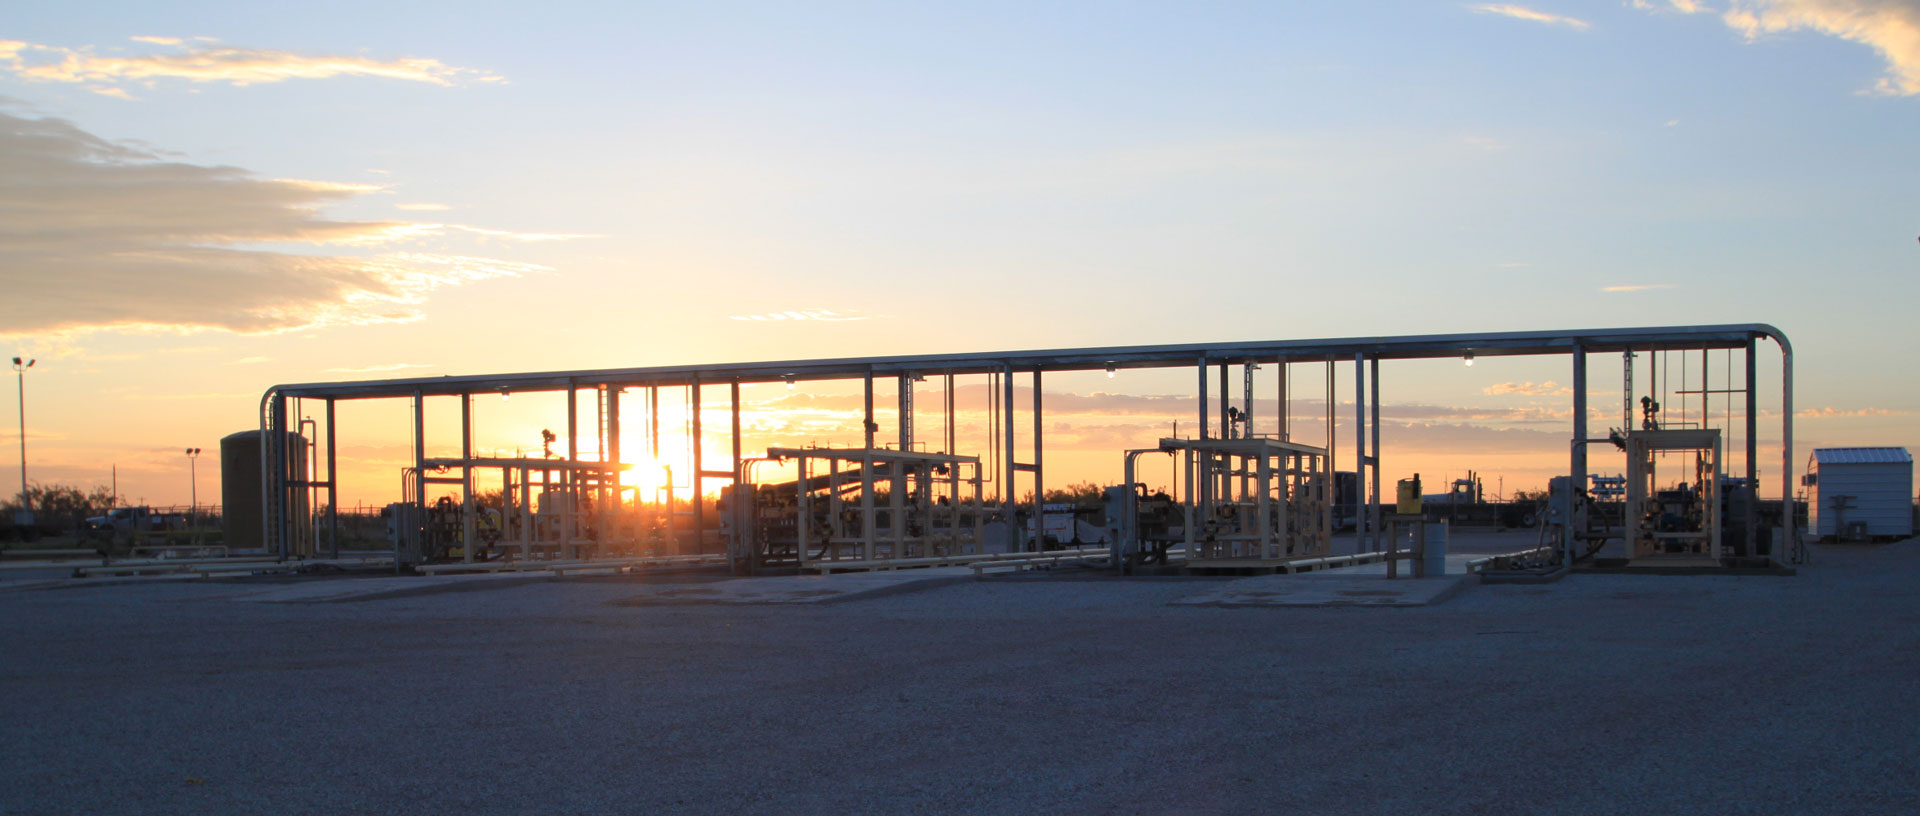 Natural Gas Processing Plants In Oklahoma